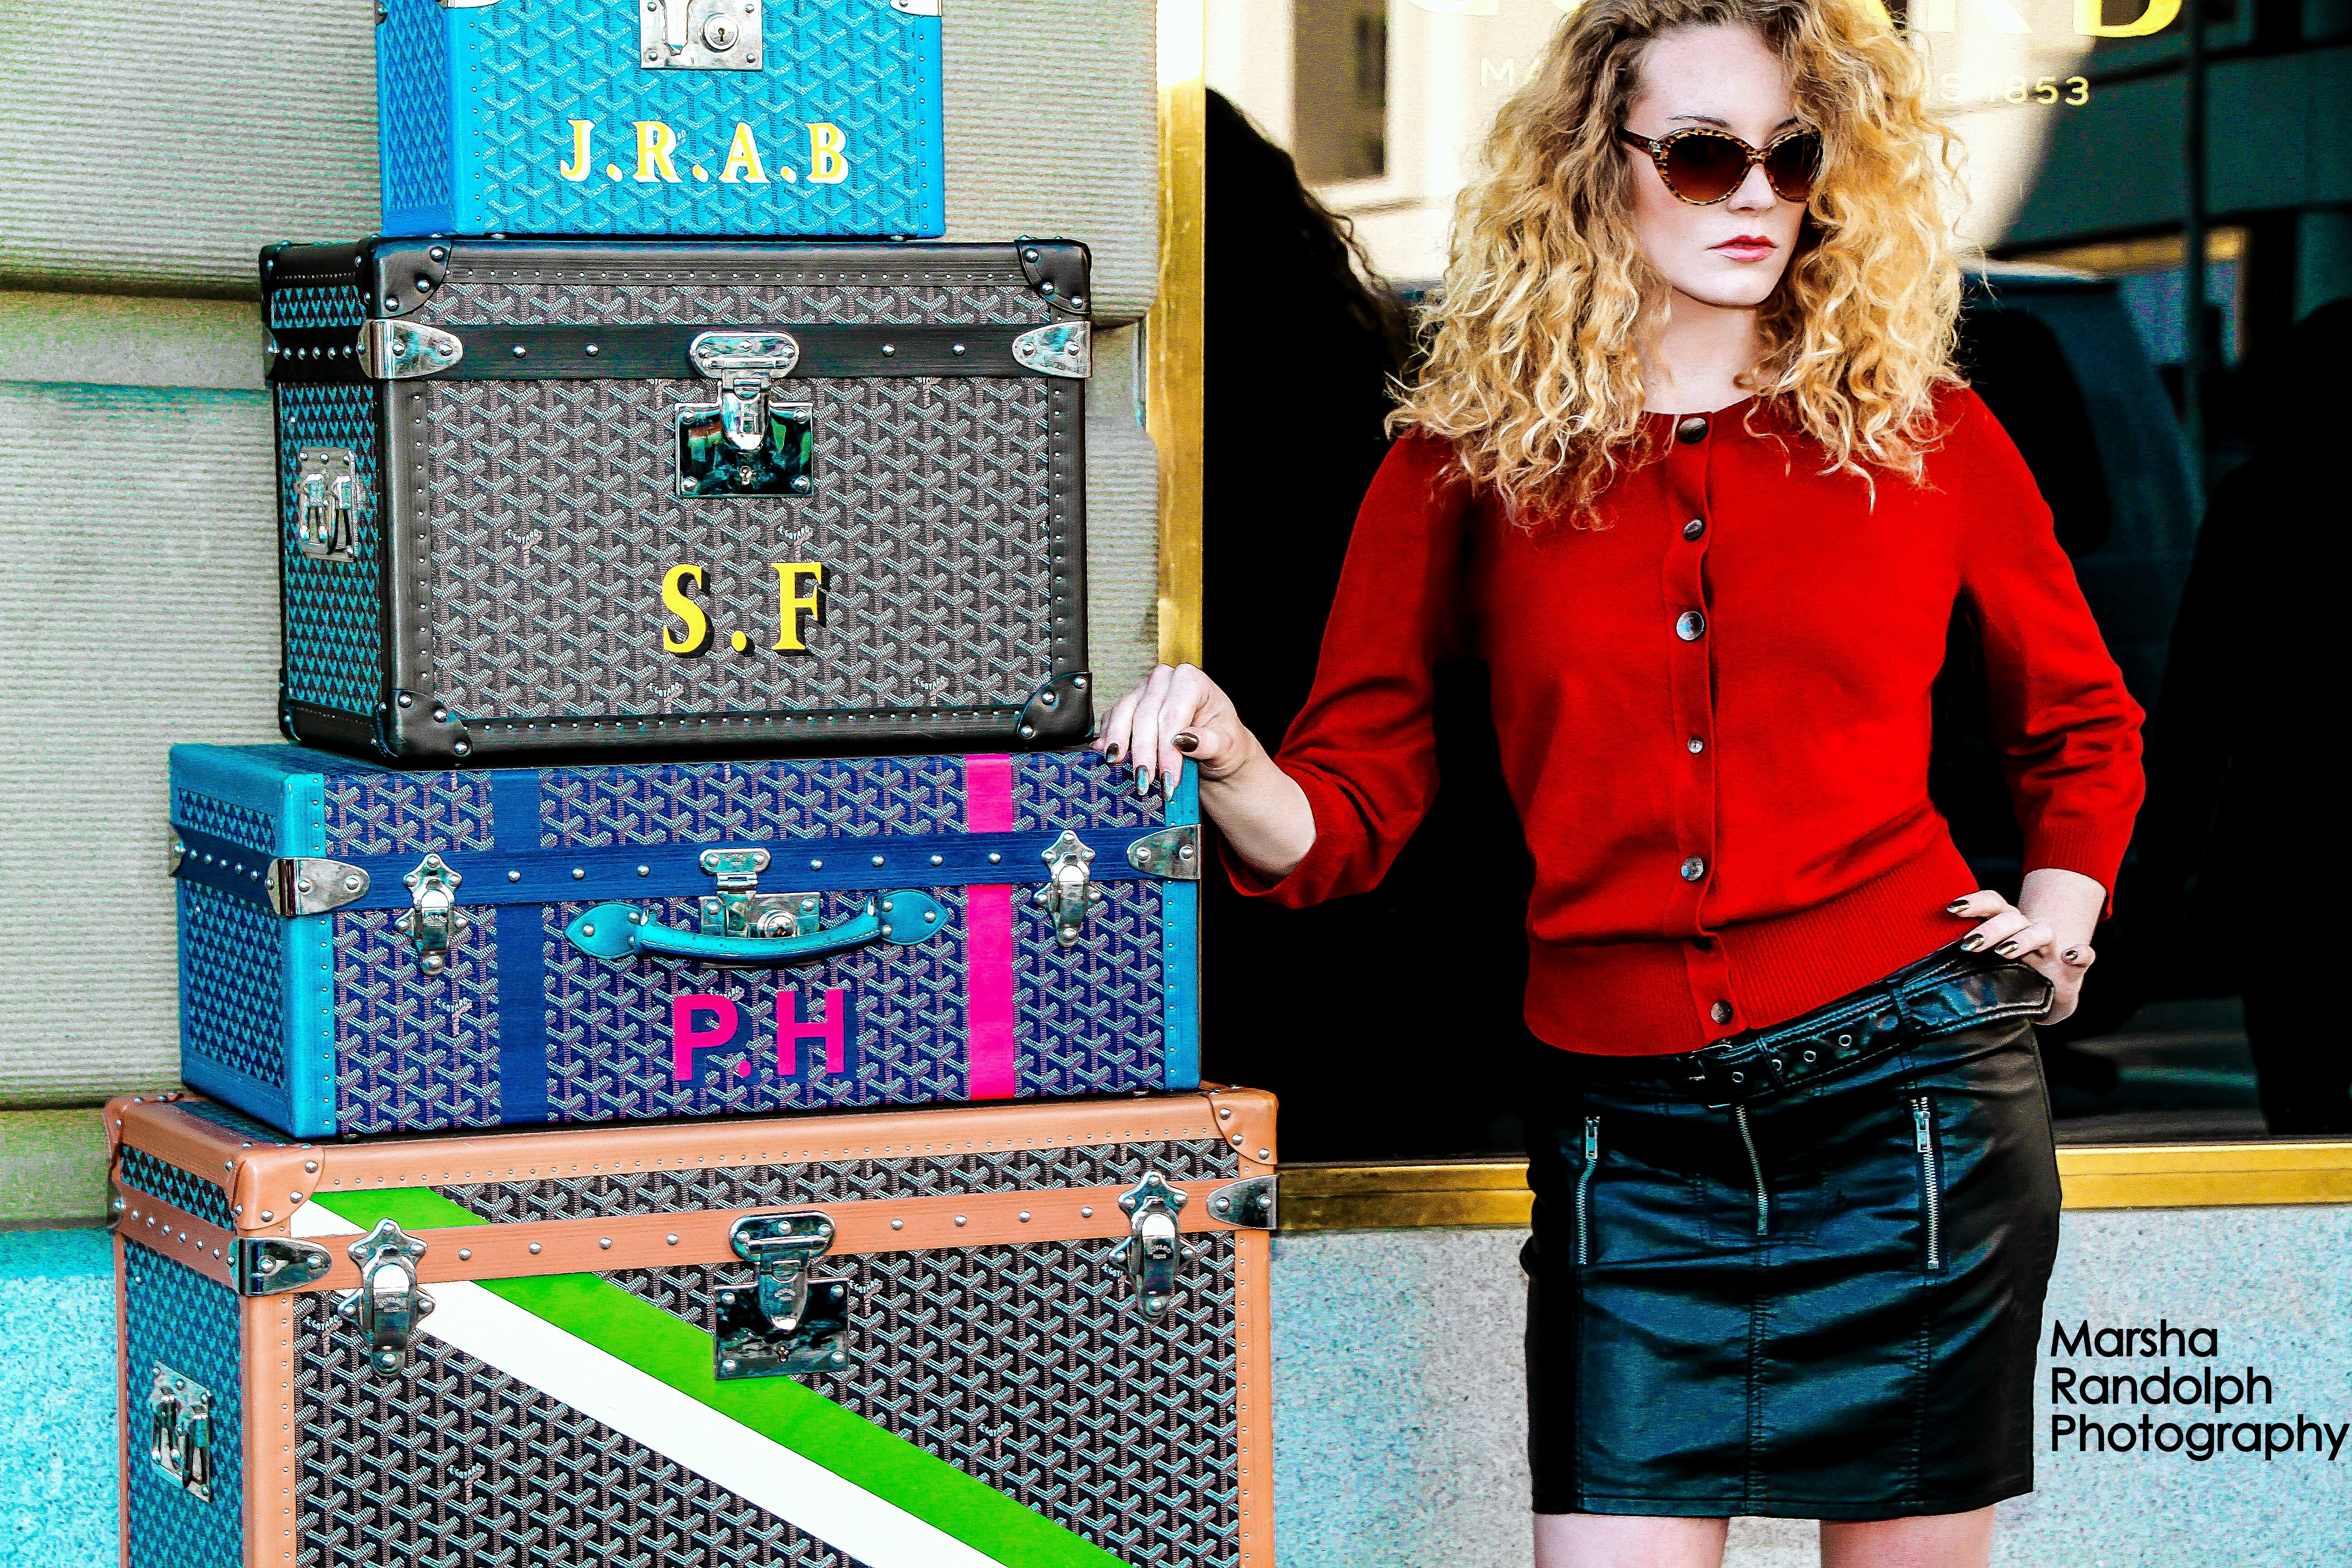 MPM Photo Fashion One 339a Travel Luggage_Facebook cover MR (2)